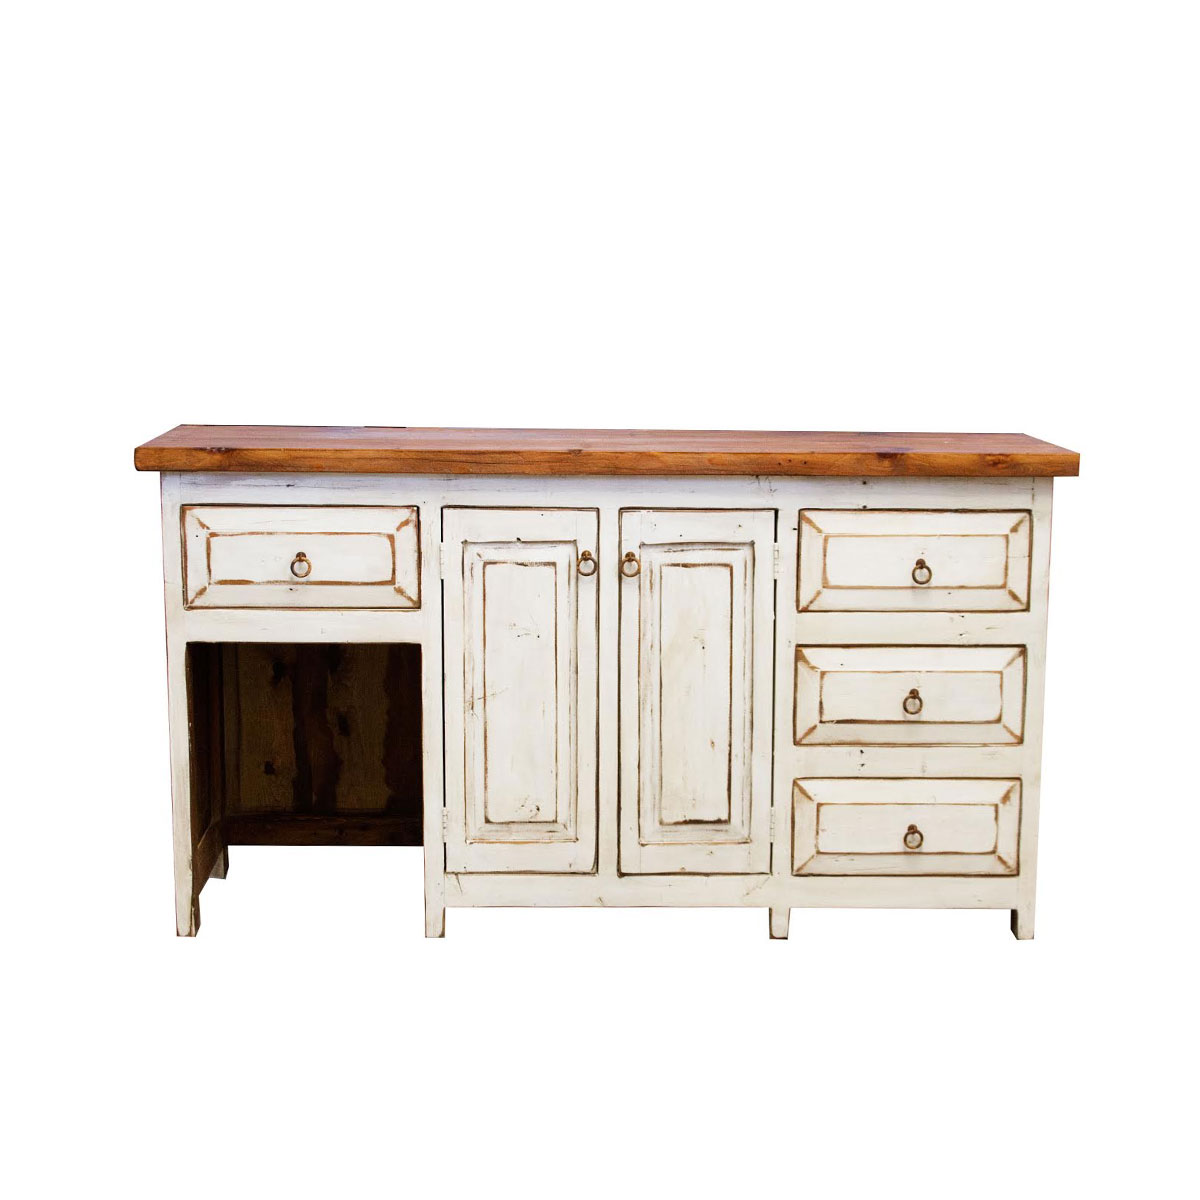 Bathroom Vanities With Sitting Area Purchase Rustic Vanity With Sitting Area Online